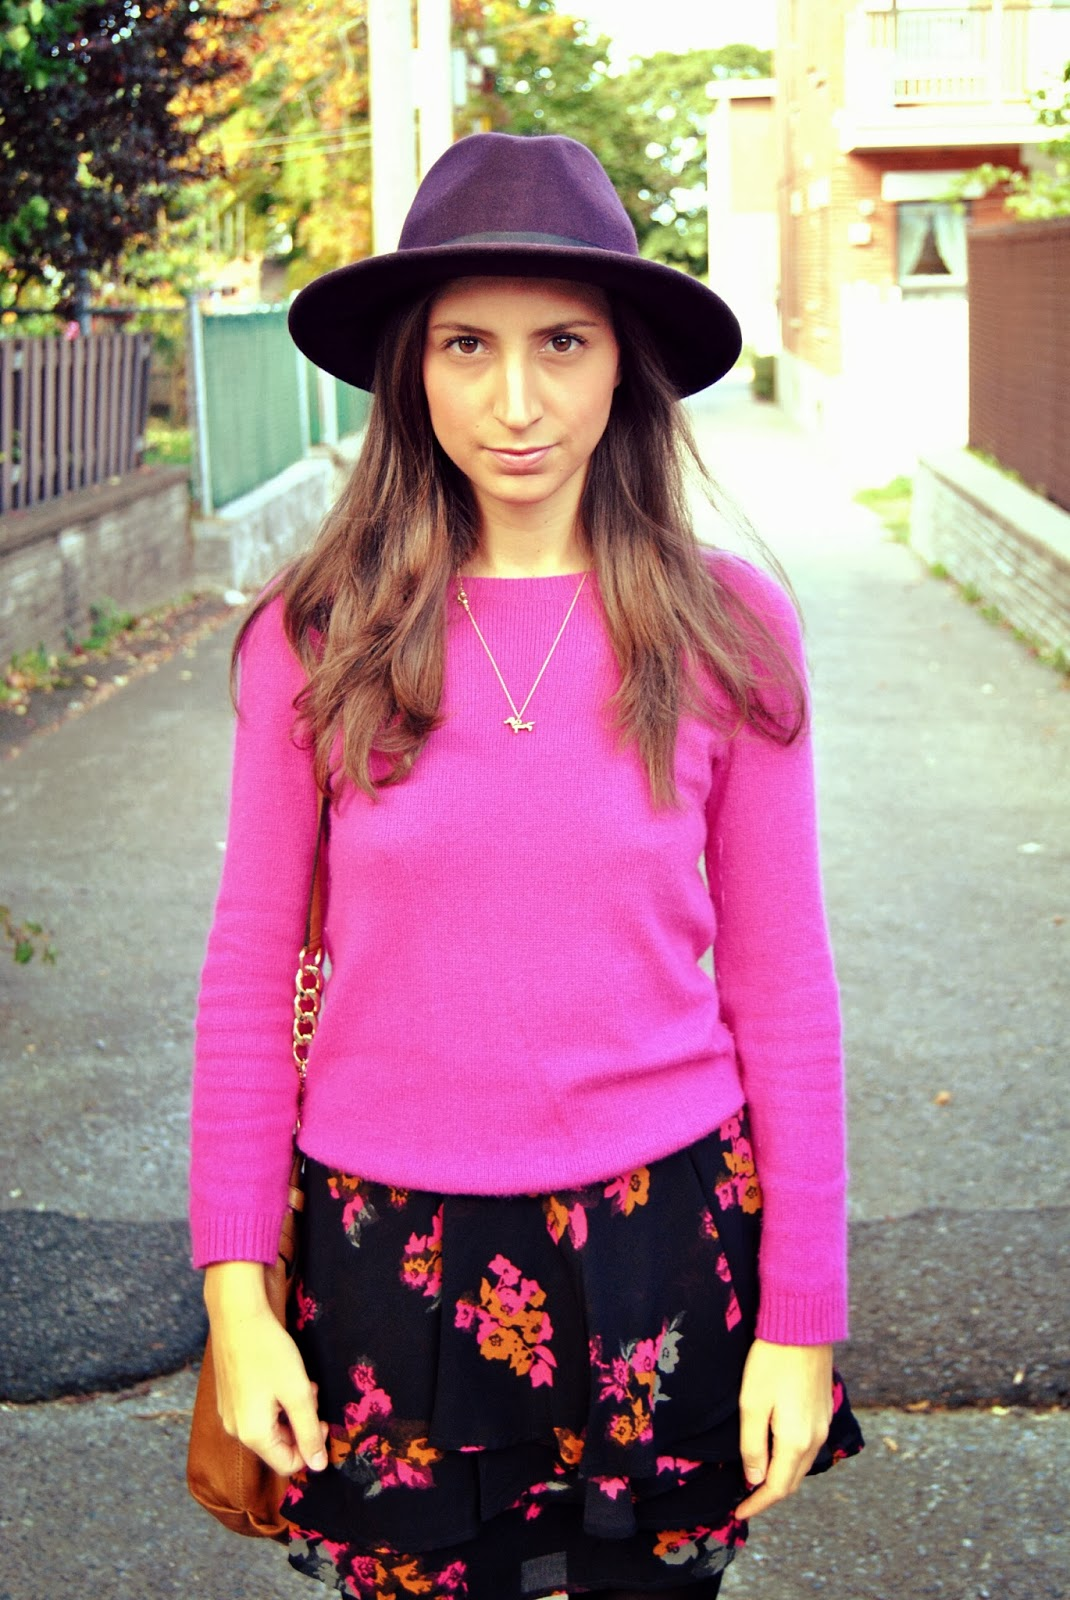 purple hat pink sweater floral skirt